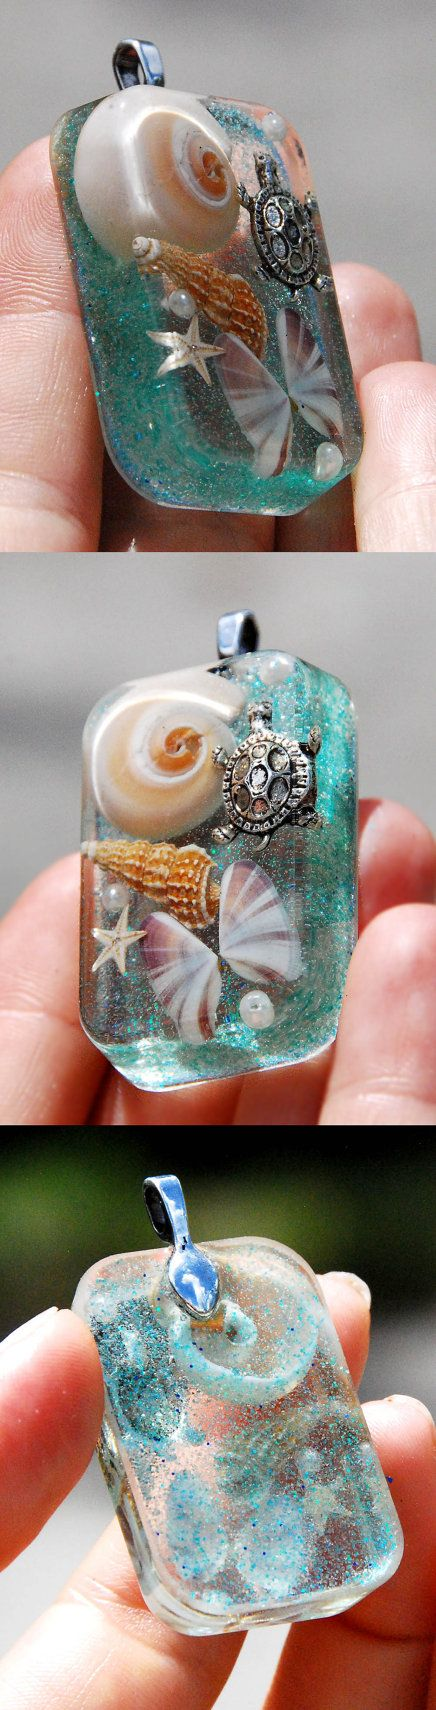 ♥  Are you thinking what to get your mom for Christmas? Are you looking for Christmas gifts for wife? Let her feel beautiful and inspired wearing this totally unique sea necklace! The handmade pendant features real seashells, real starfish, and a tiny charm turtle frozen inside the resin jewelry piece. This art jewelry pendant has a very gentle glitter sparkle of the ocean waves!  The necklace comes with a genuine 925 sterling silver chain (Italy) and the handmade pendant looks like a sem...